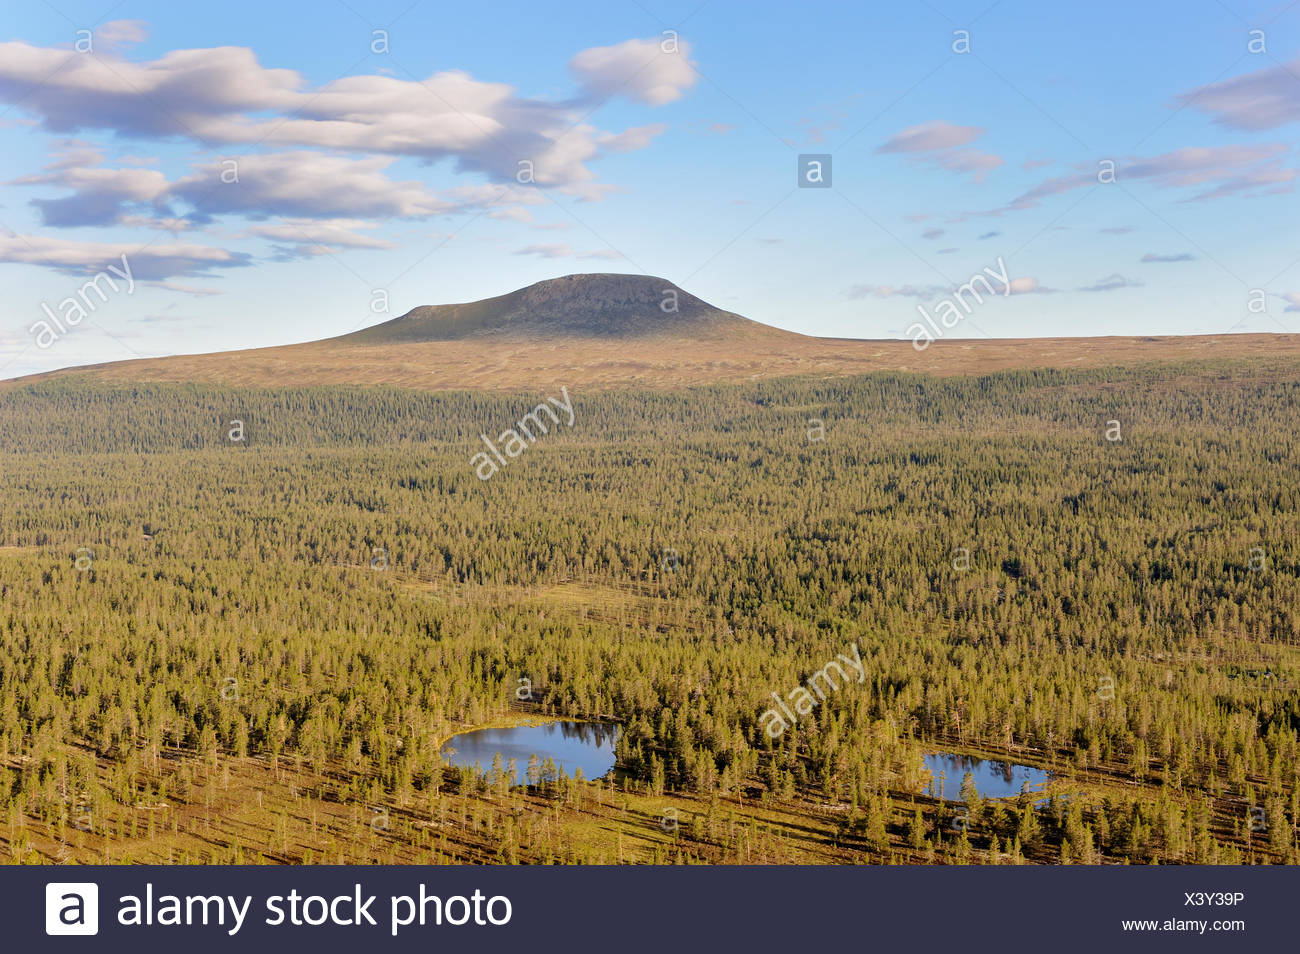 color image Dalarna forest horizontal landscape mountain nature Scandinavia Scandinavian mountain summer Sweden - Stock Image